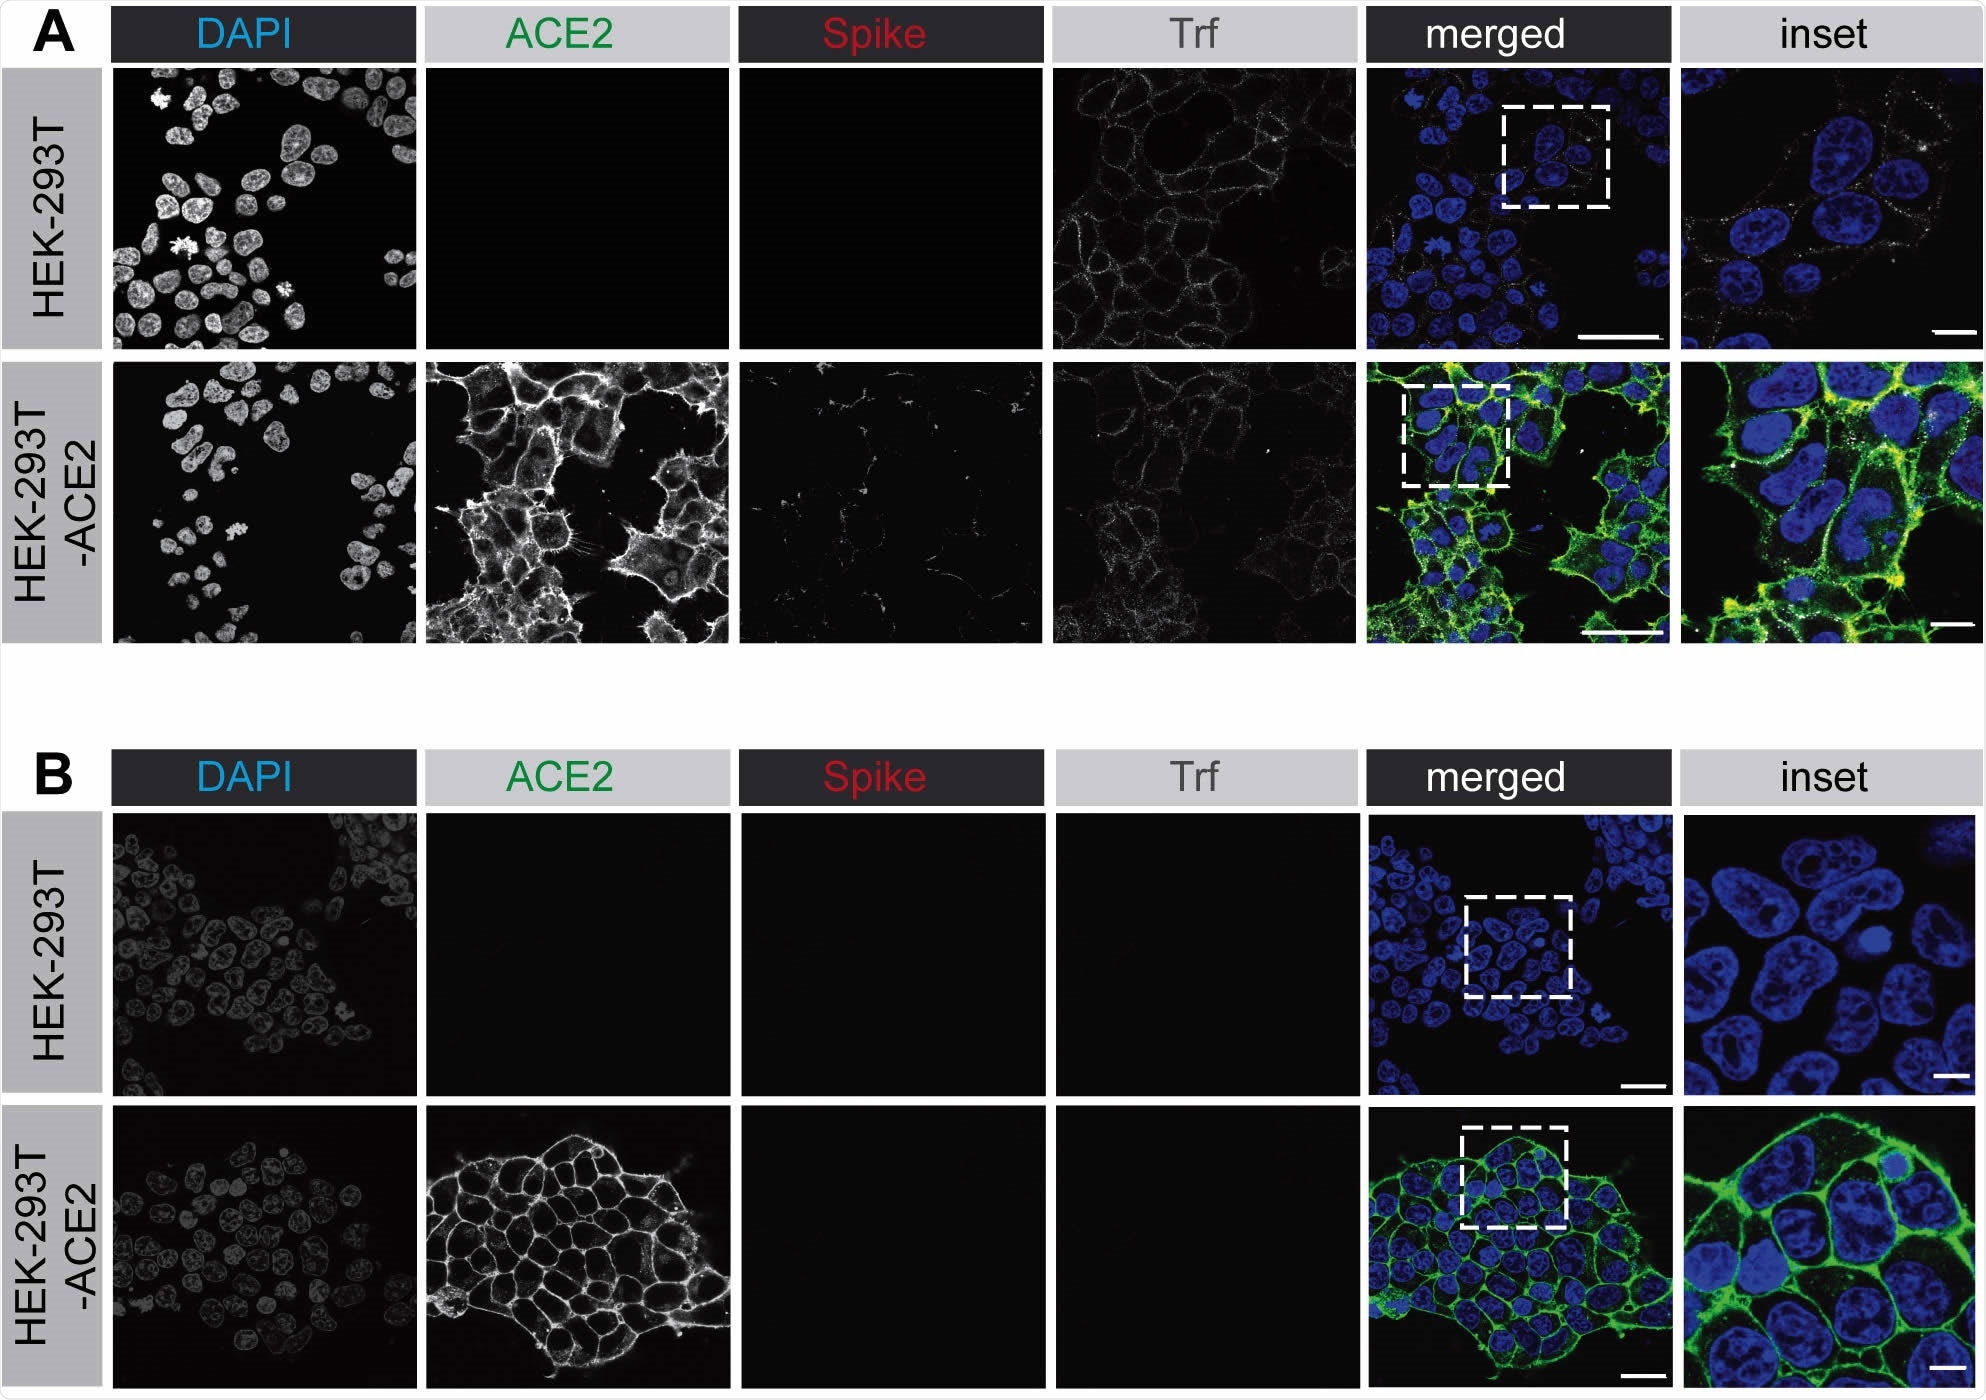 SARS-CoV-2 spike protein binds to the surface of HEK-293 cells expressing ACE2. (A) HEK-293 cells, wild-type (top row of images) or stably expressing ACE2 (bottom row of images) were incubated with purified, His6-tagged spike protein and with alexa-647 labelled transferrin for 30 min at 4°C. Following PBS wash, the cells were fixed and stained with DAPI to reveal nuclei, with an antibody selectively recognizing ACE2, and with an antibody recognizing the His6 epitope tag of the spike protein. Scale bars = 40 µm for the low mag images and 10 µm for the higher mag inset of the composite. (B) Experiment performed as in A except that the HEK-293 cells were briefly acid washed prior to fixation. Scale bars = 40 µm for the low mag images and 10 µm for the higher mag inset of the composite.